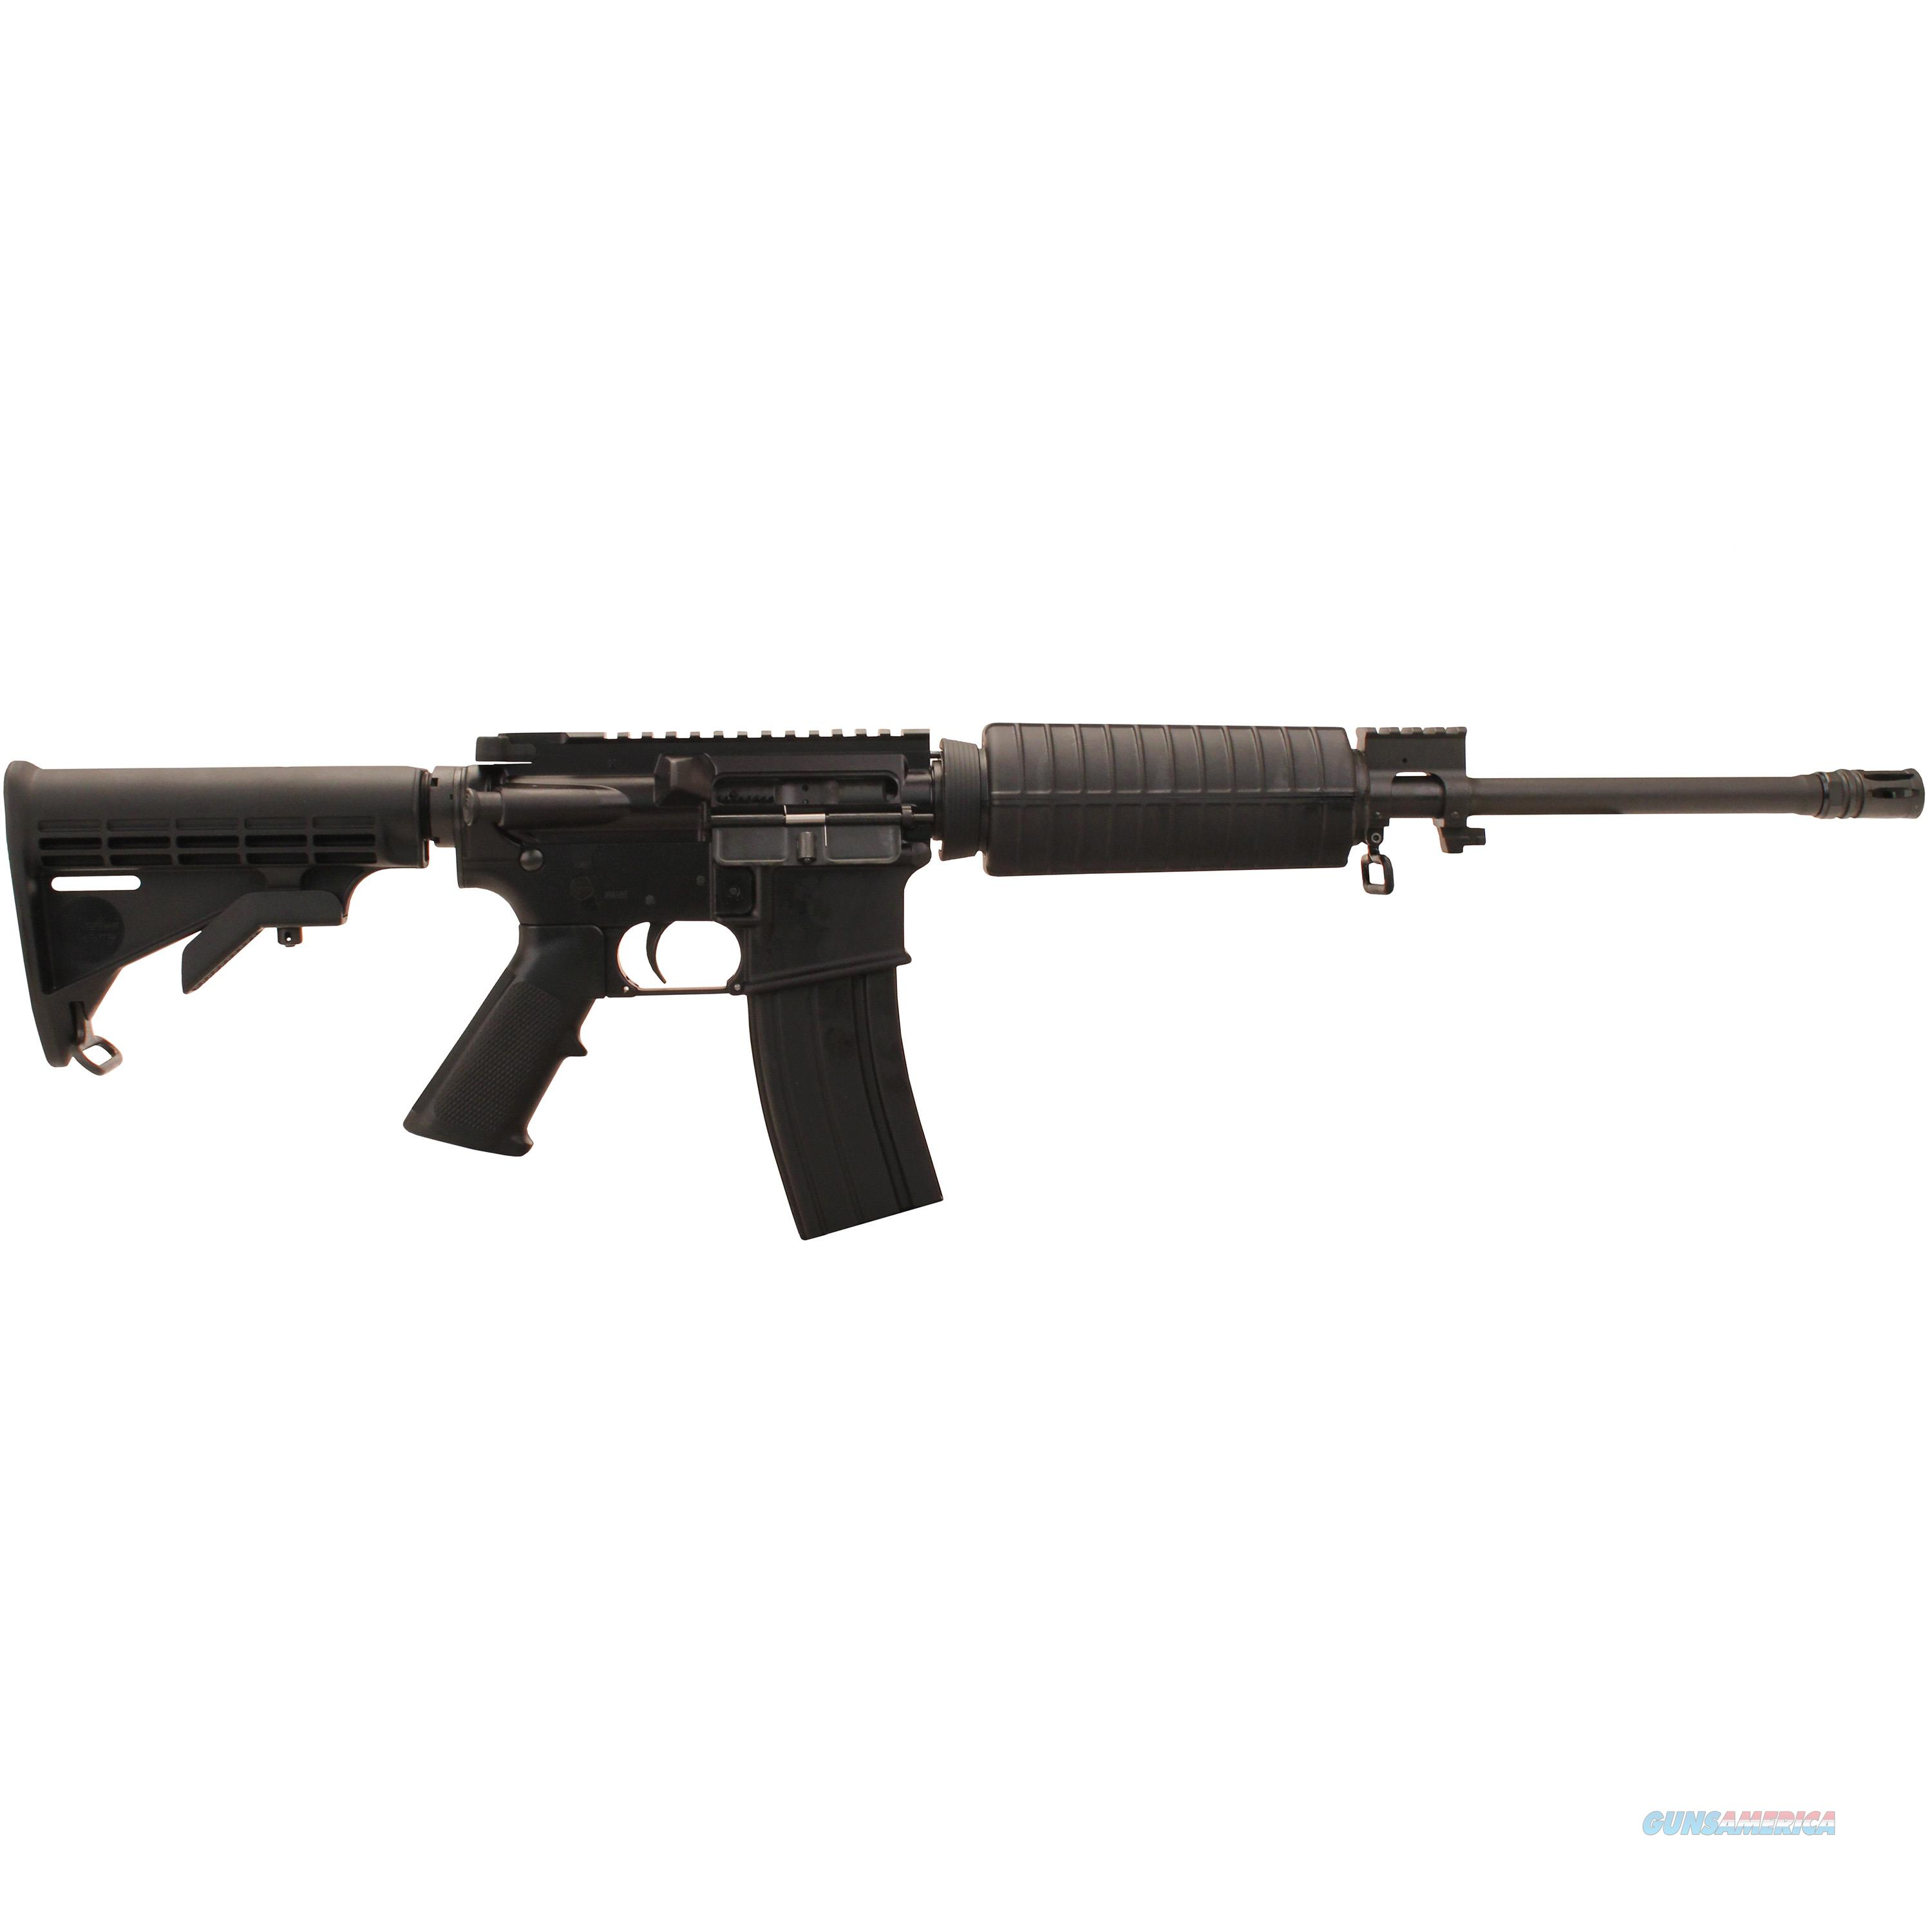 """Windham Weaponry 300 Blackout, 16"""" Barrel, 30 Rounds R16FTT-300  Guns > Rifles > Windham Weaponry Rifles"""